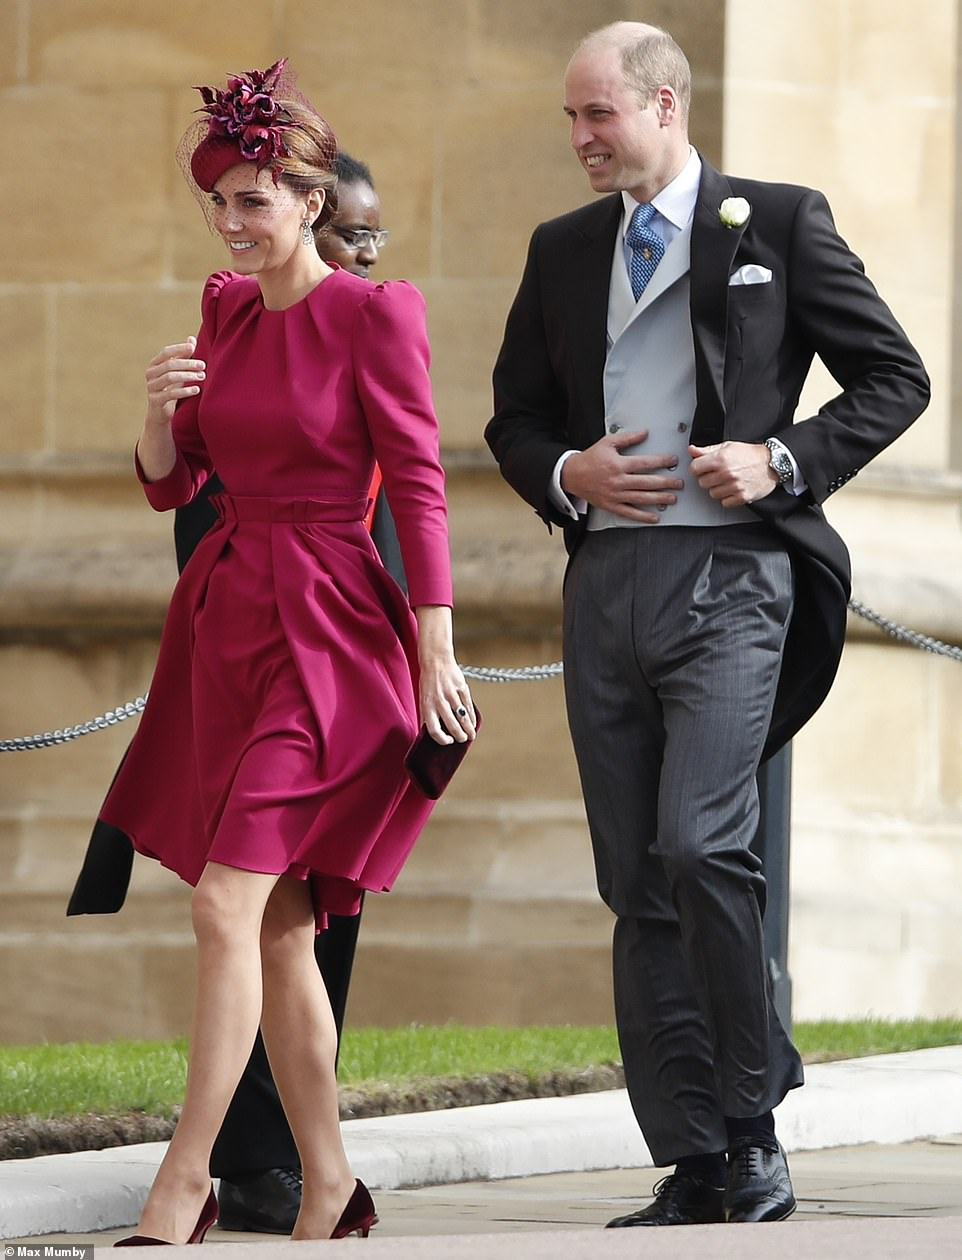 kate middleton puts legs on show at princess eugenies wedding